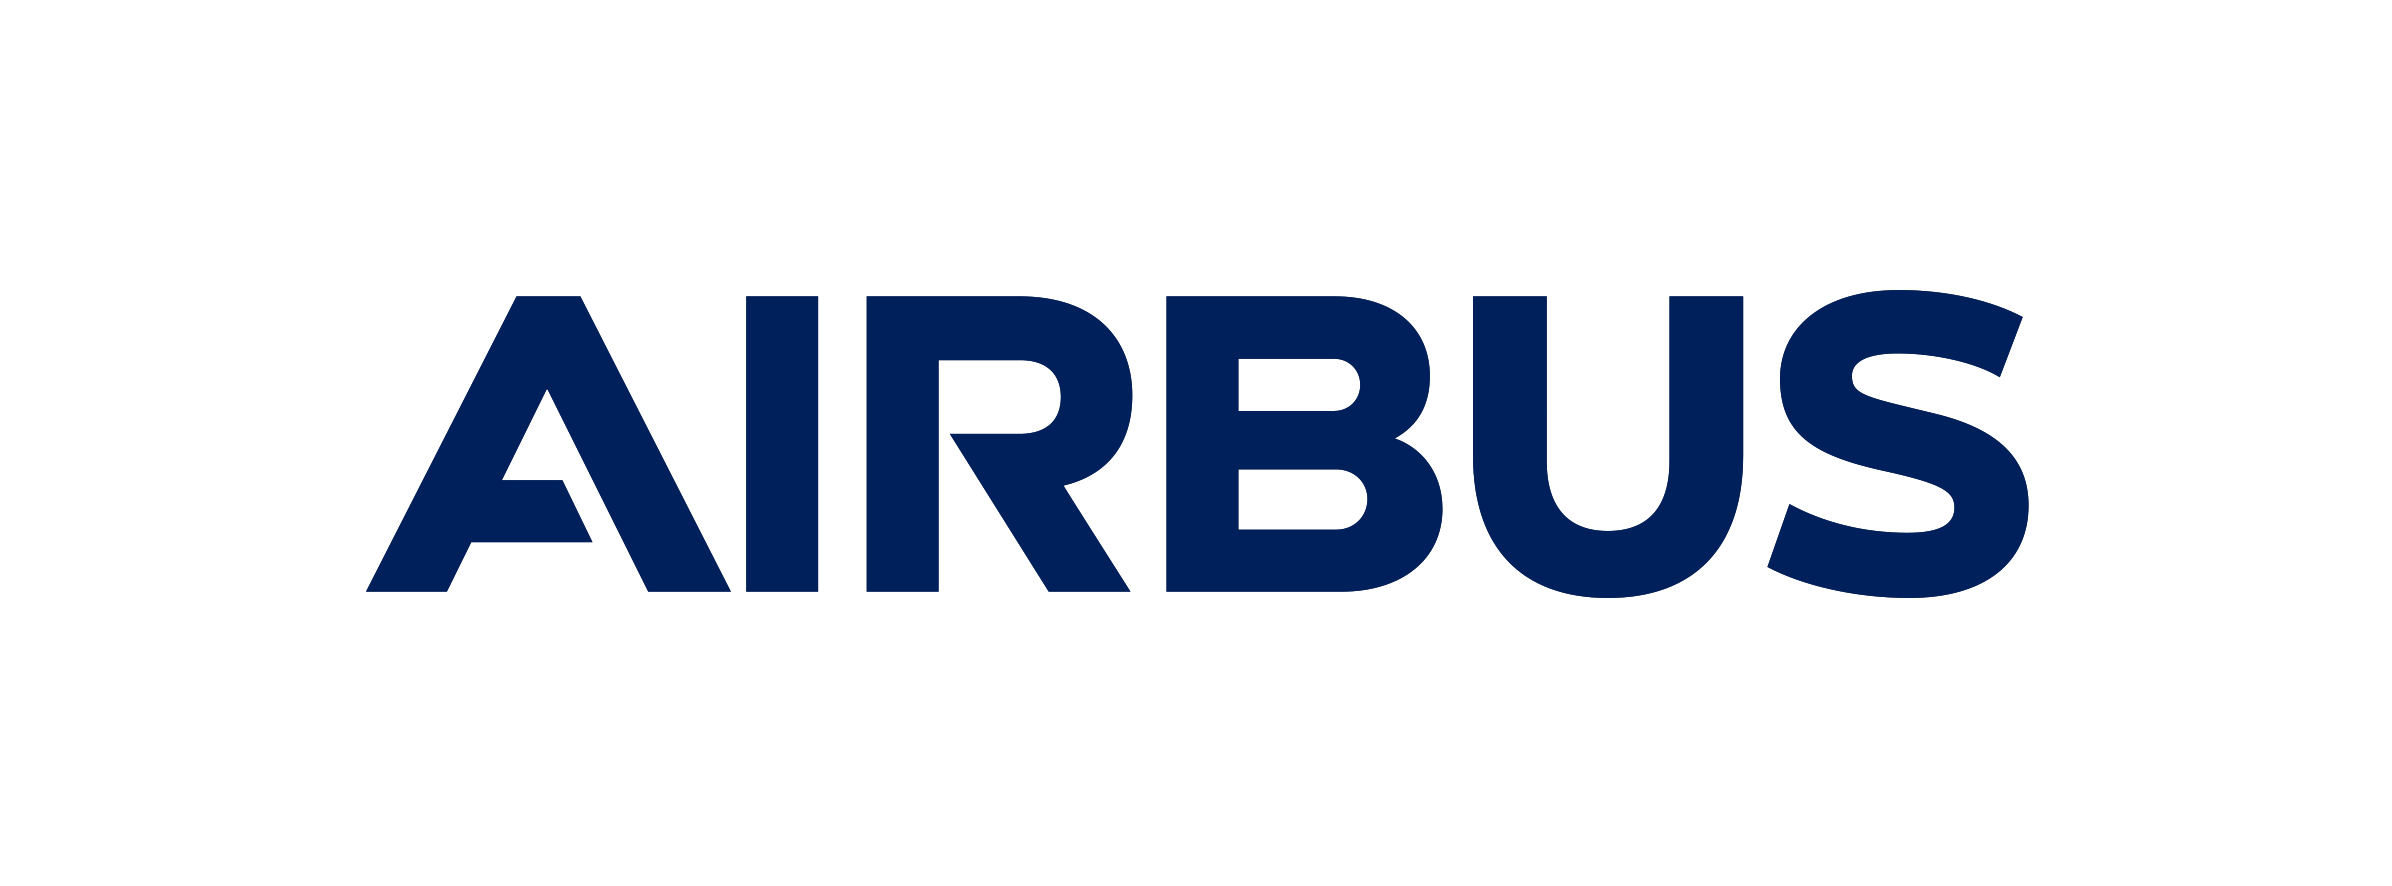 AIRBUS_Blue.png